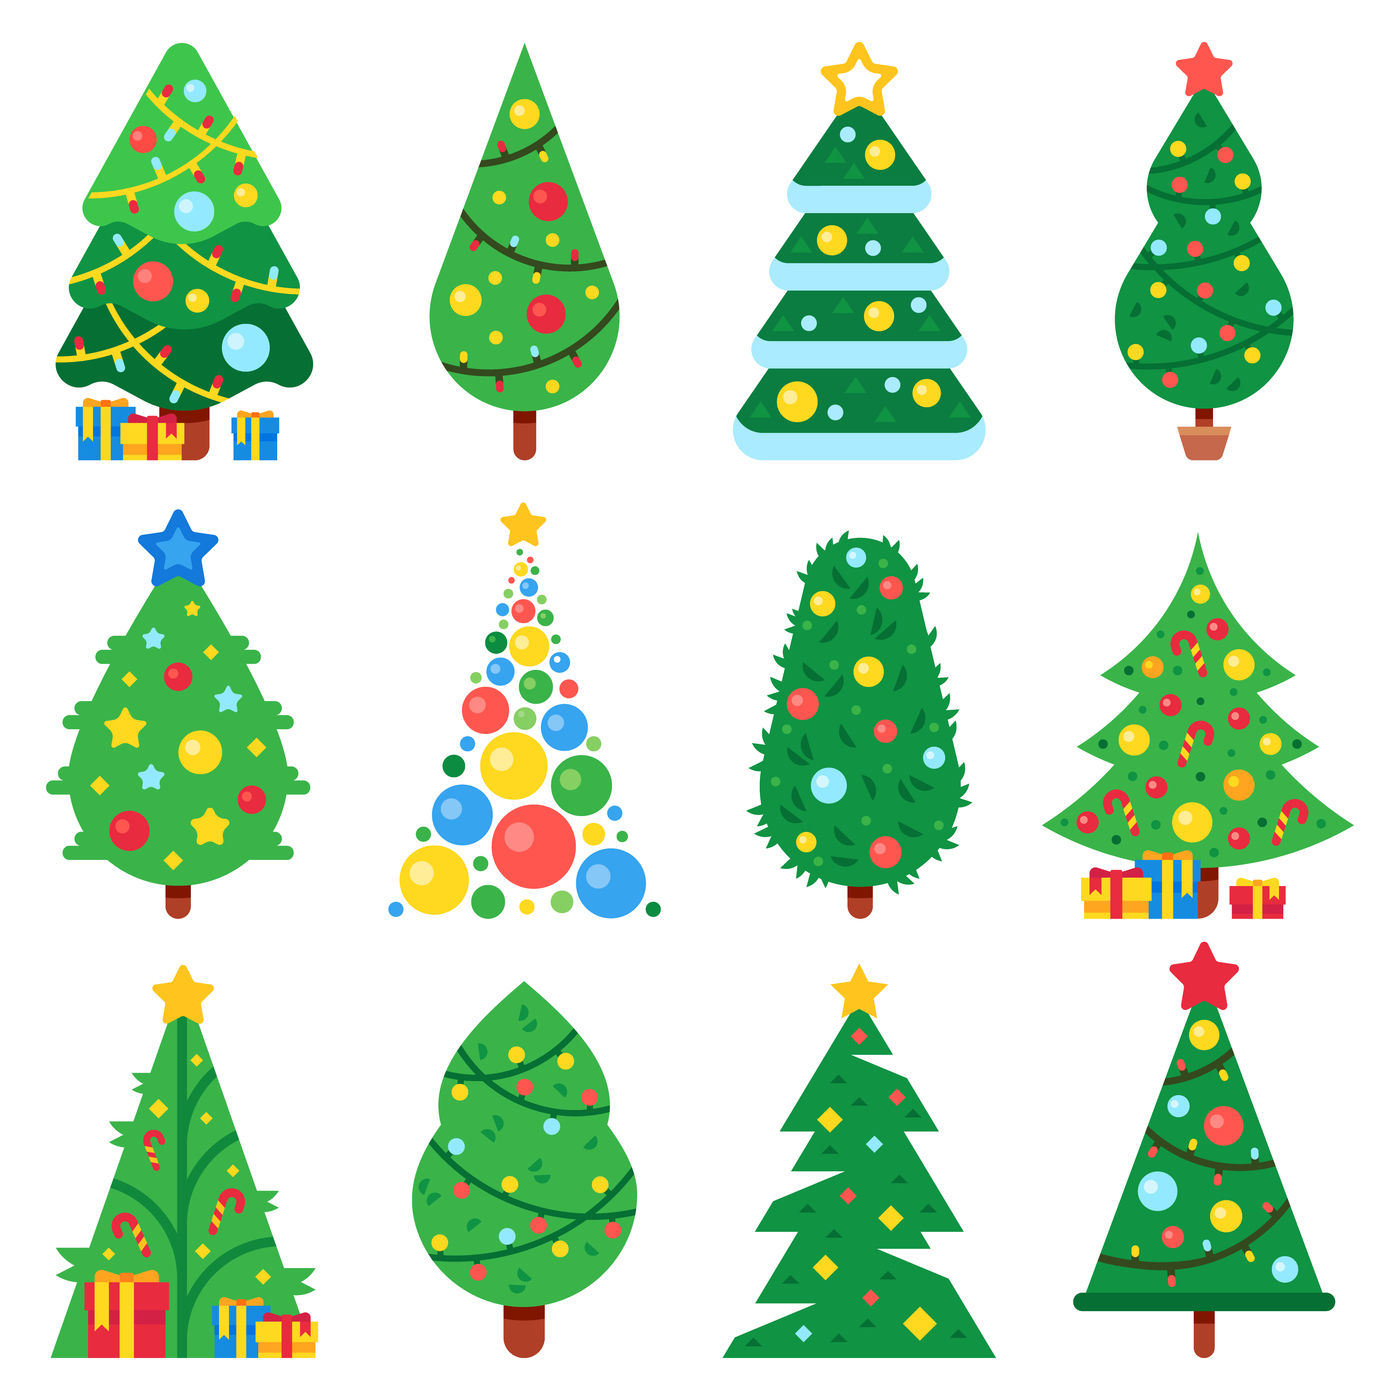 Flat Paper Christmas Tree Winter Holidays Trees Decorated Star